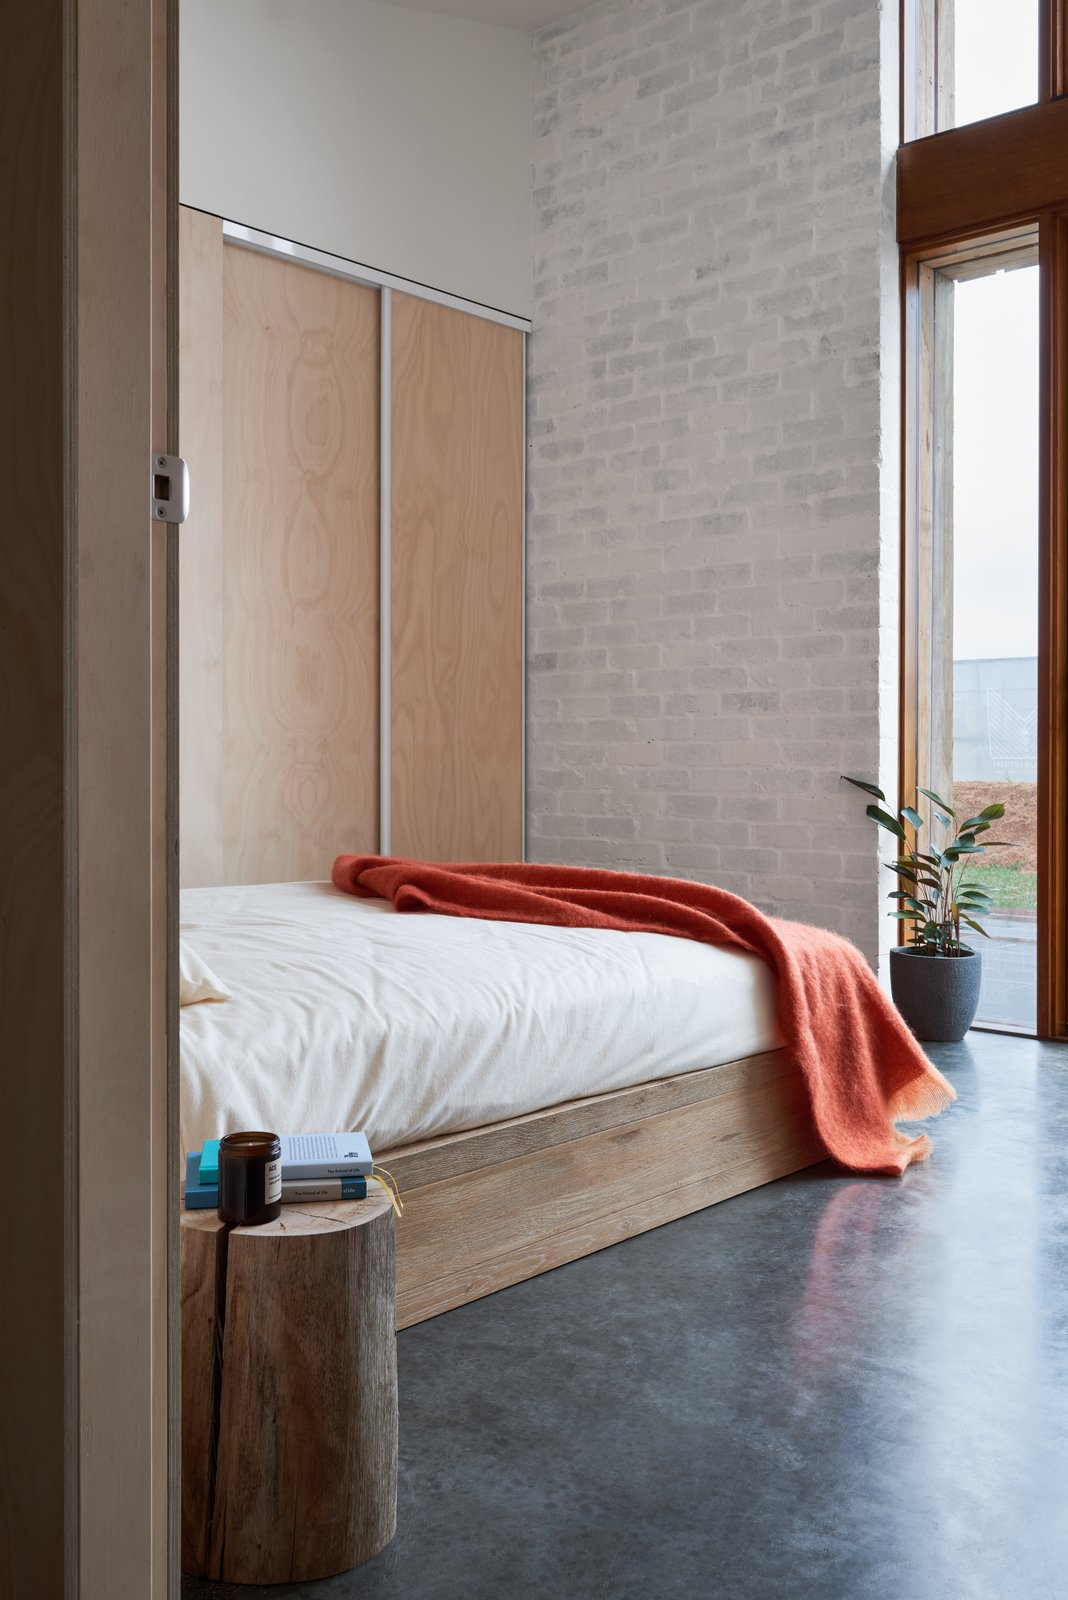 Bedroom, Night Stands, Wardrobe, Ceiling Lighting, Bed, Wall Lighting, and Concrete Floor Looking into the second bedroom featuring the home's recycled brick walls with a light natural, no VOC coat of paint.  The 10 Star Home by The Sociable Weaver